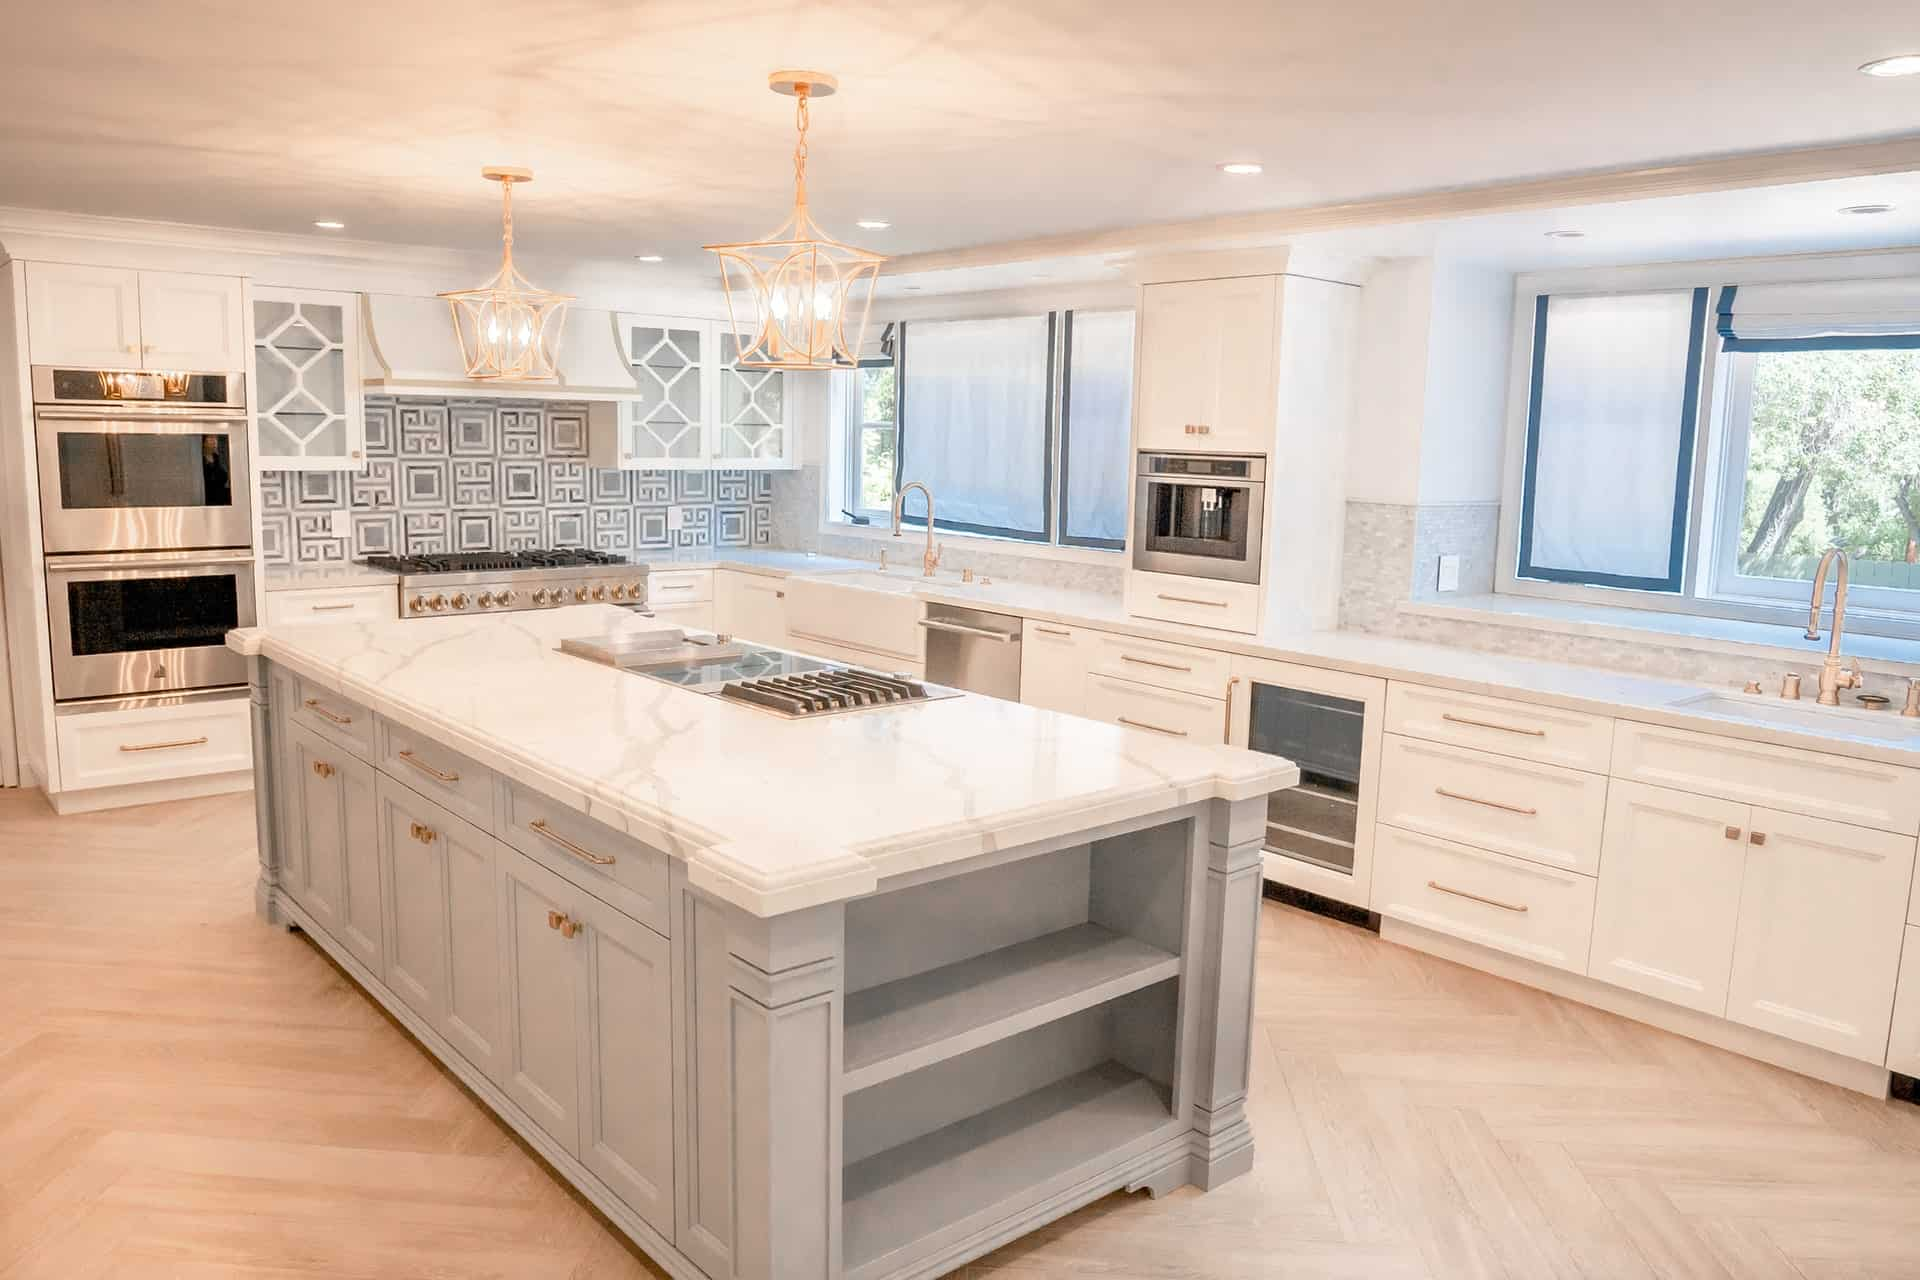 White and Gray Palette kitchen cabinet ideas